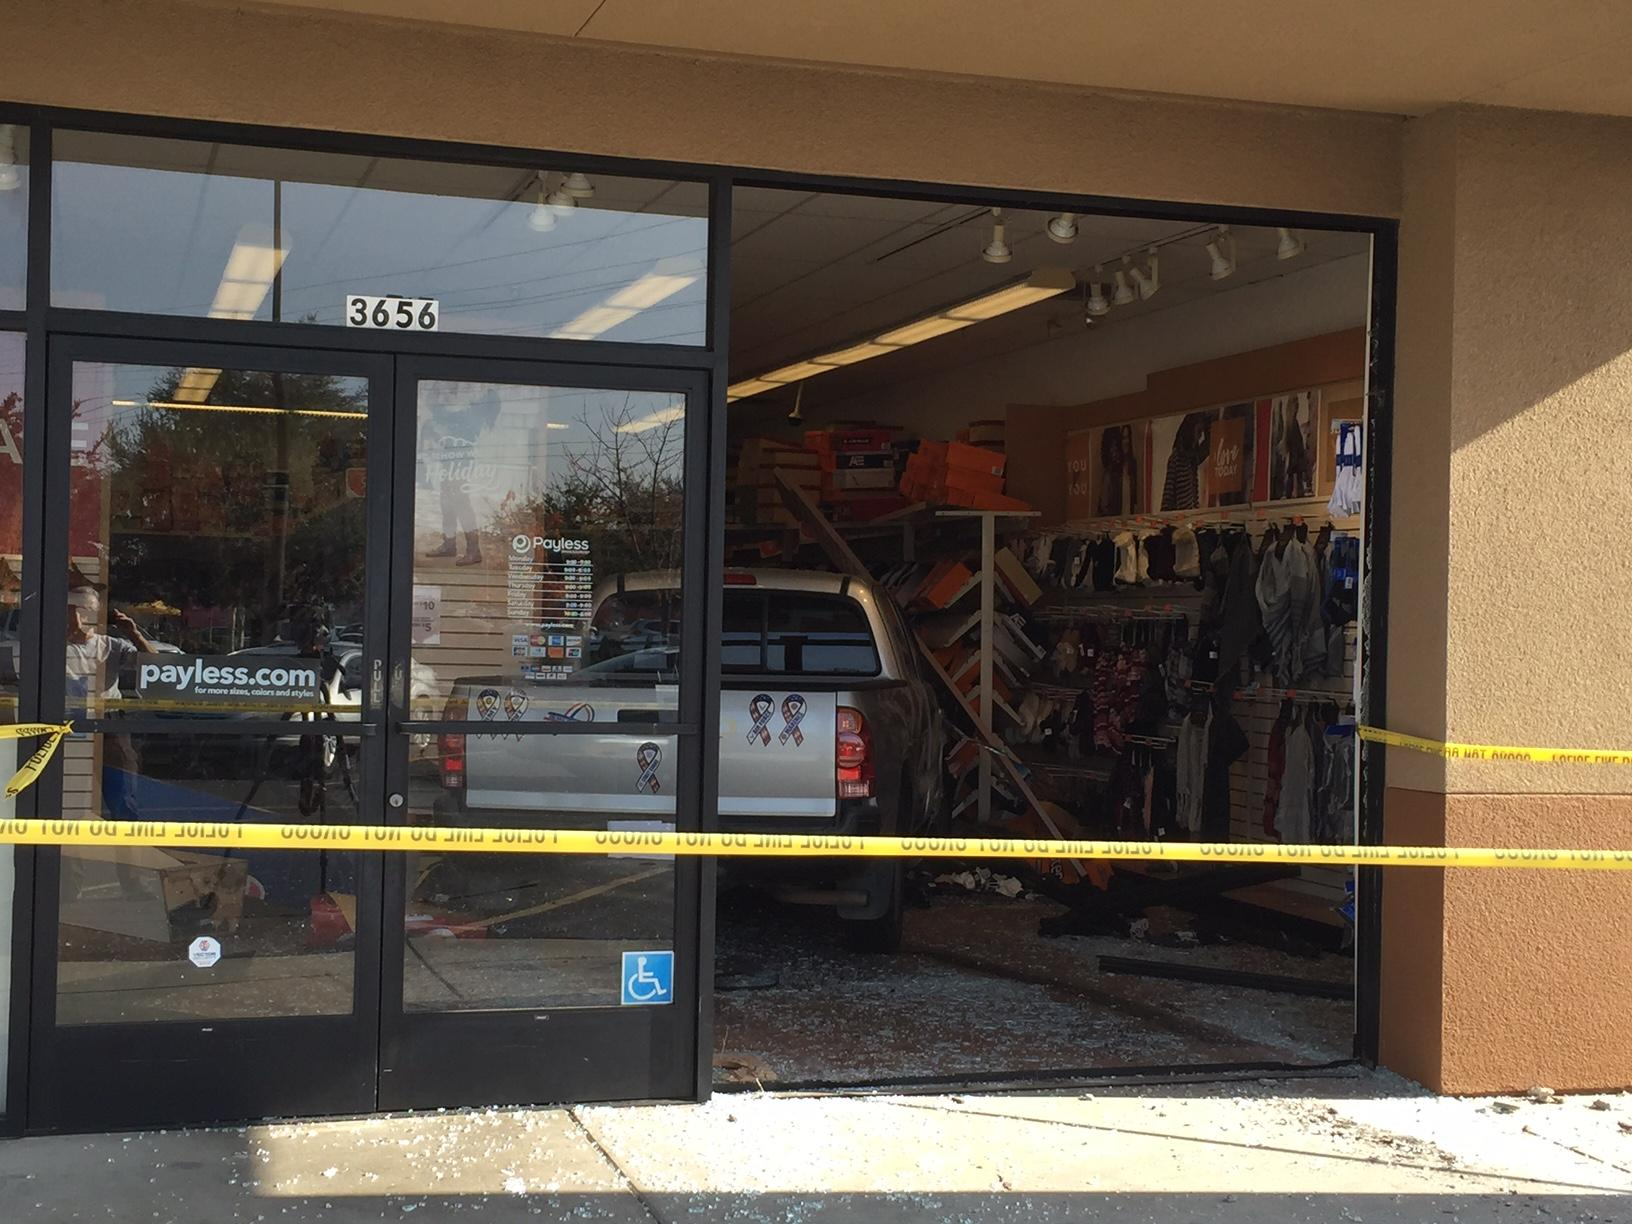 A pickup truck crashed through the glass in the front of a Payless ShoeSource store in Northwest Fresno on Thursday.